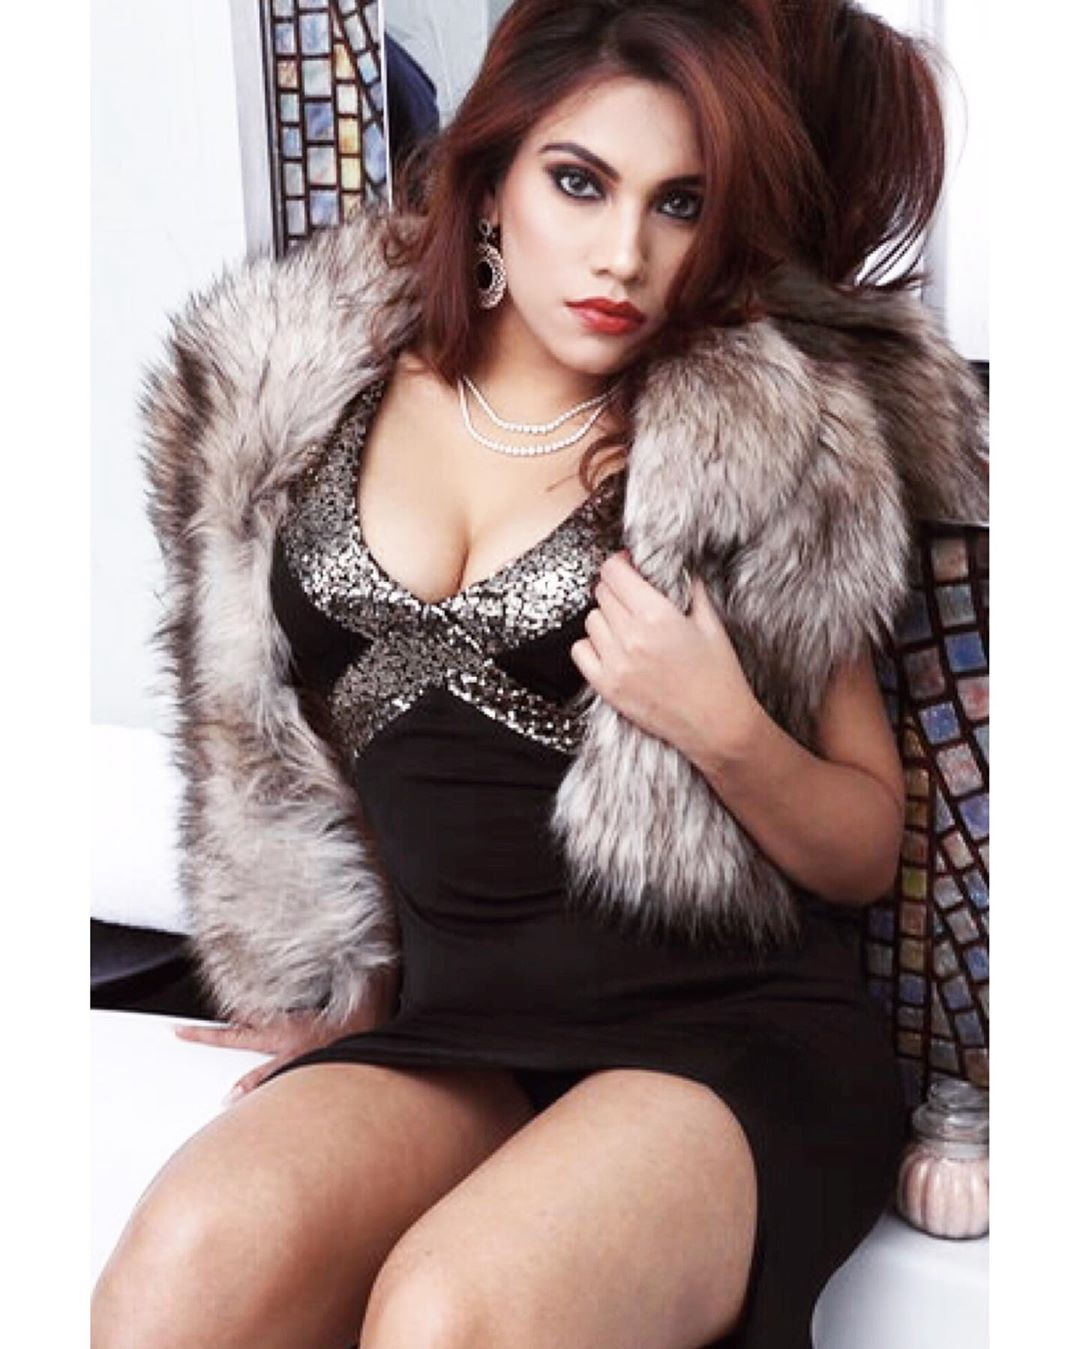 Love these cool fur clothing, Photo shoot